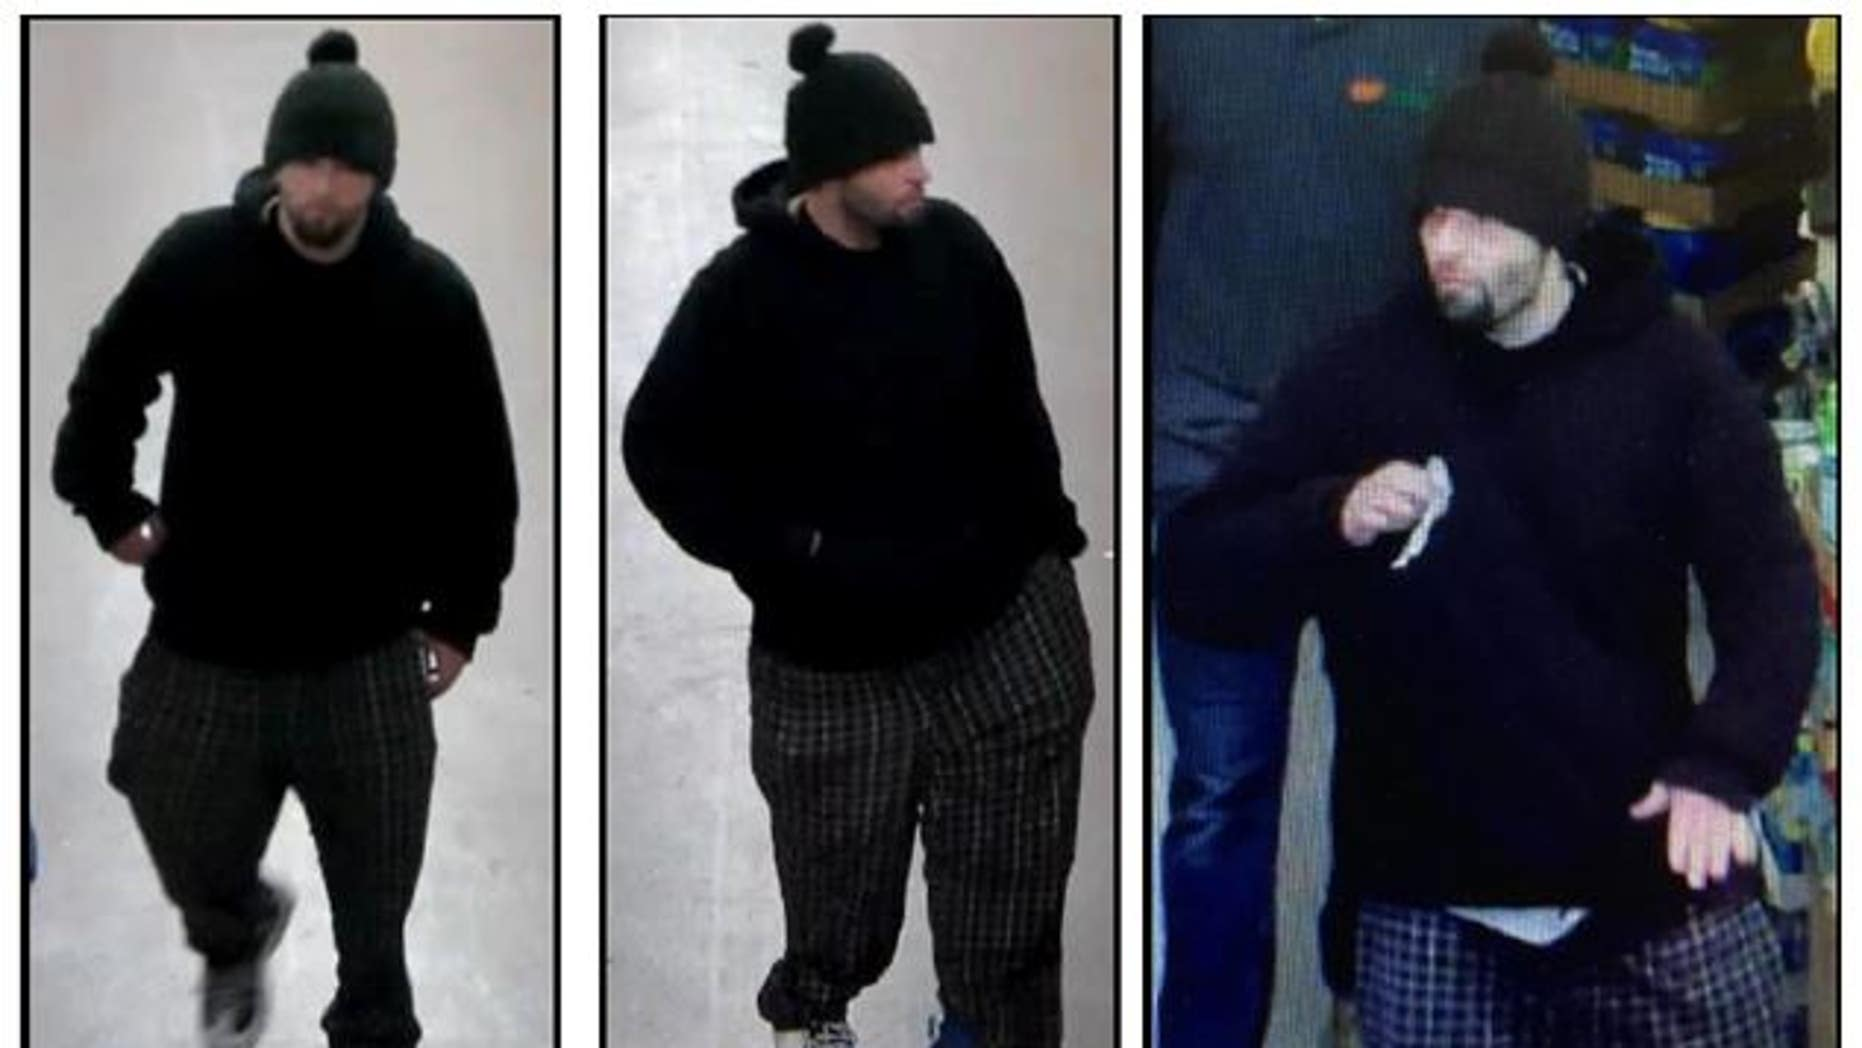 Police released these images of the suspect on the loose.